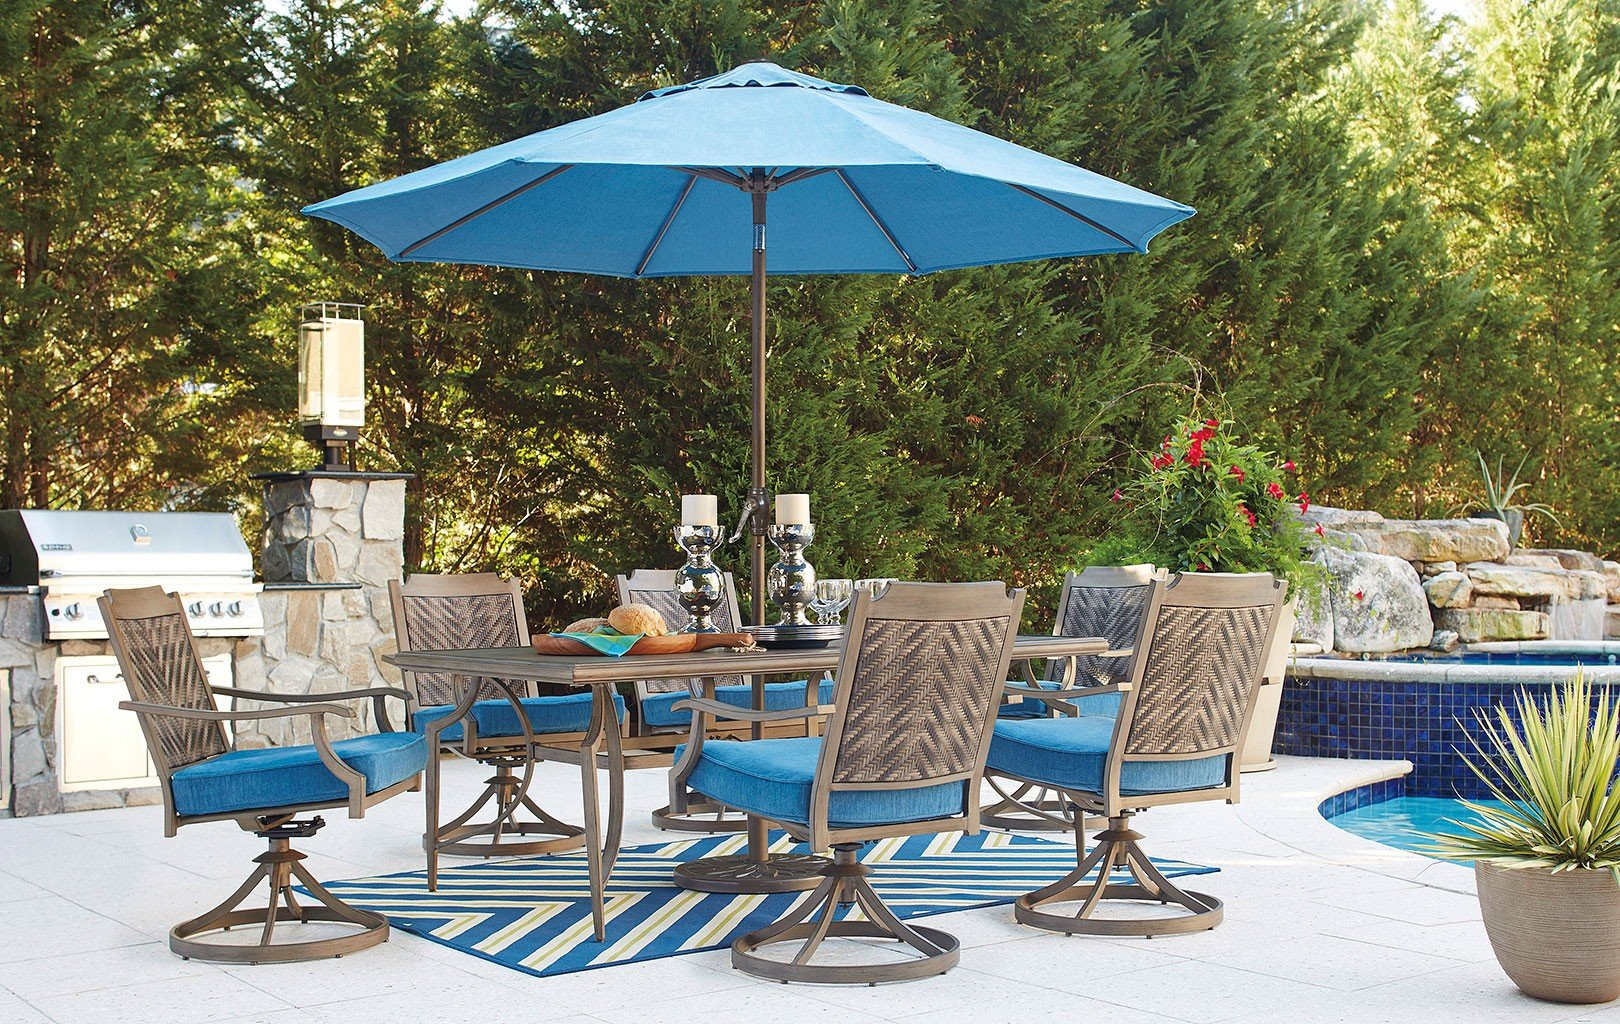 Partanna Outdoor Dining Set w/ Swivel Chairs and Umbrella